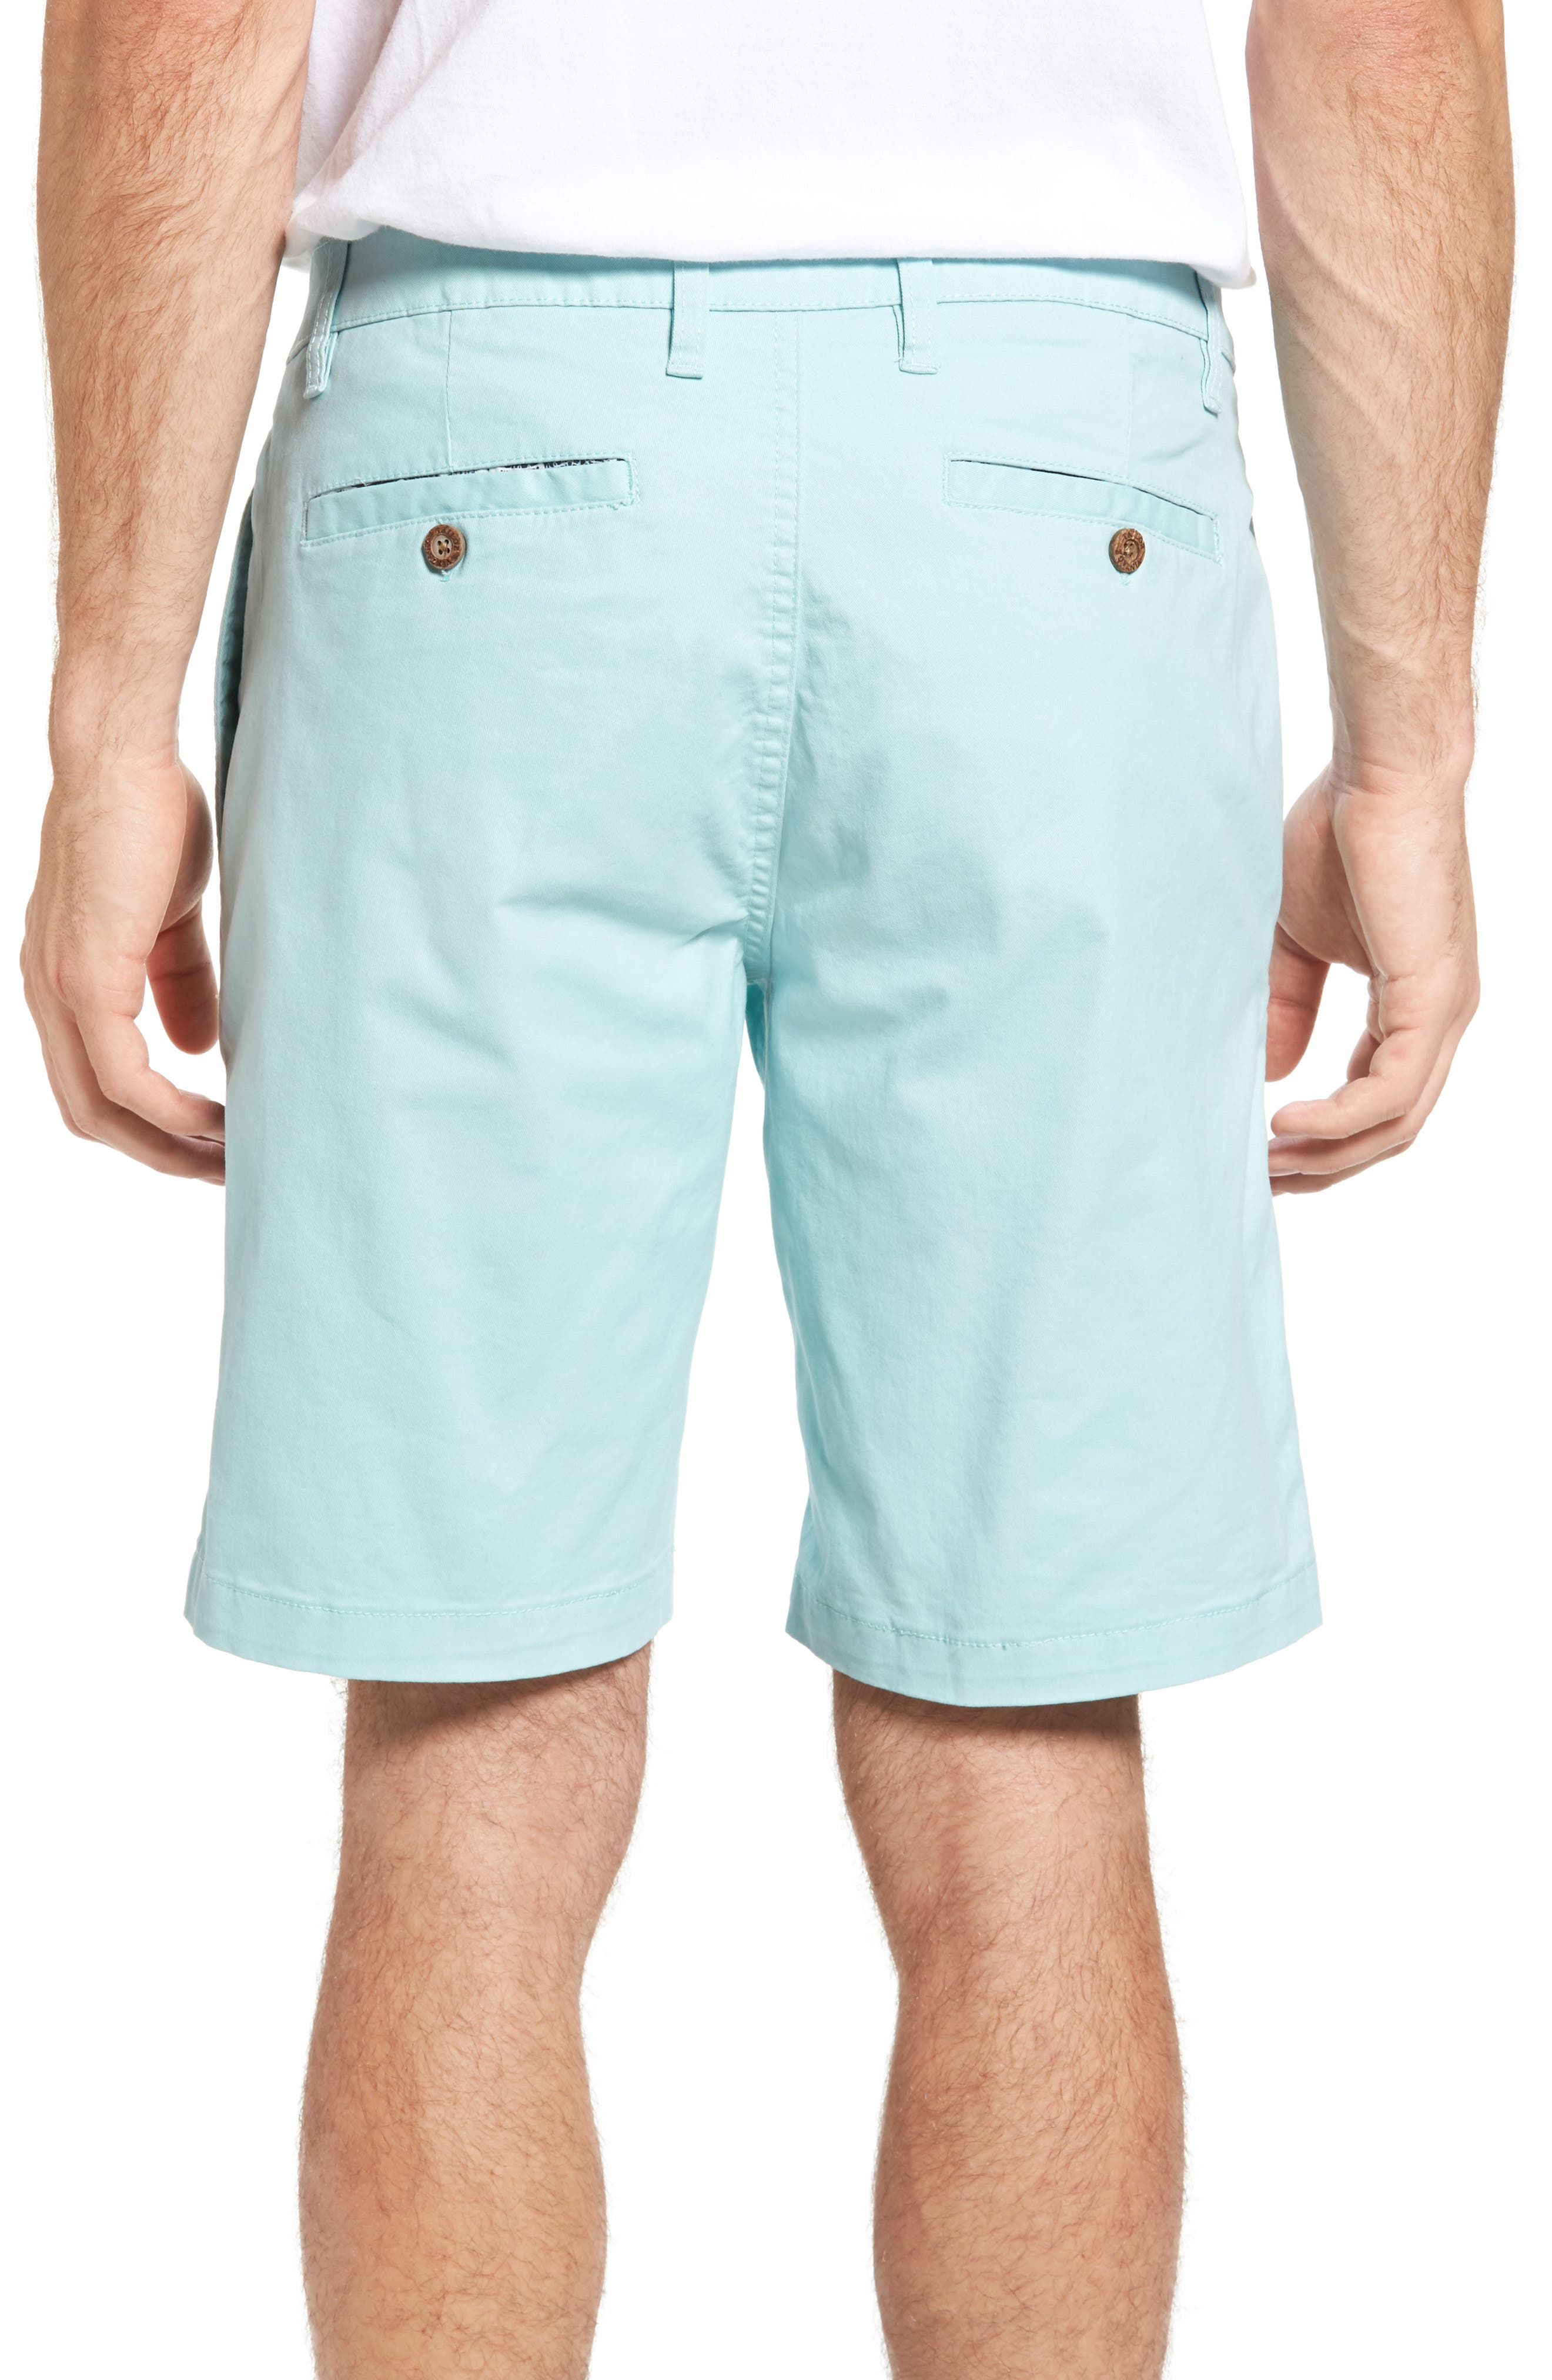 Stretch Twill Walking Shorts,                             Alternate thumbnail 2, color,                             Canal Blue